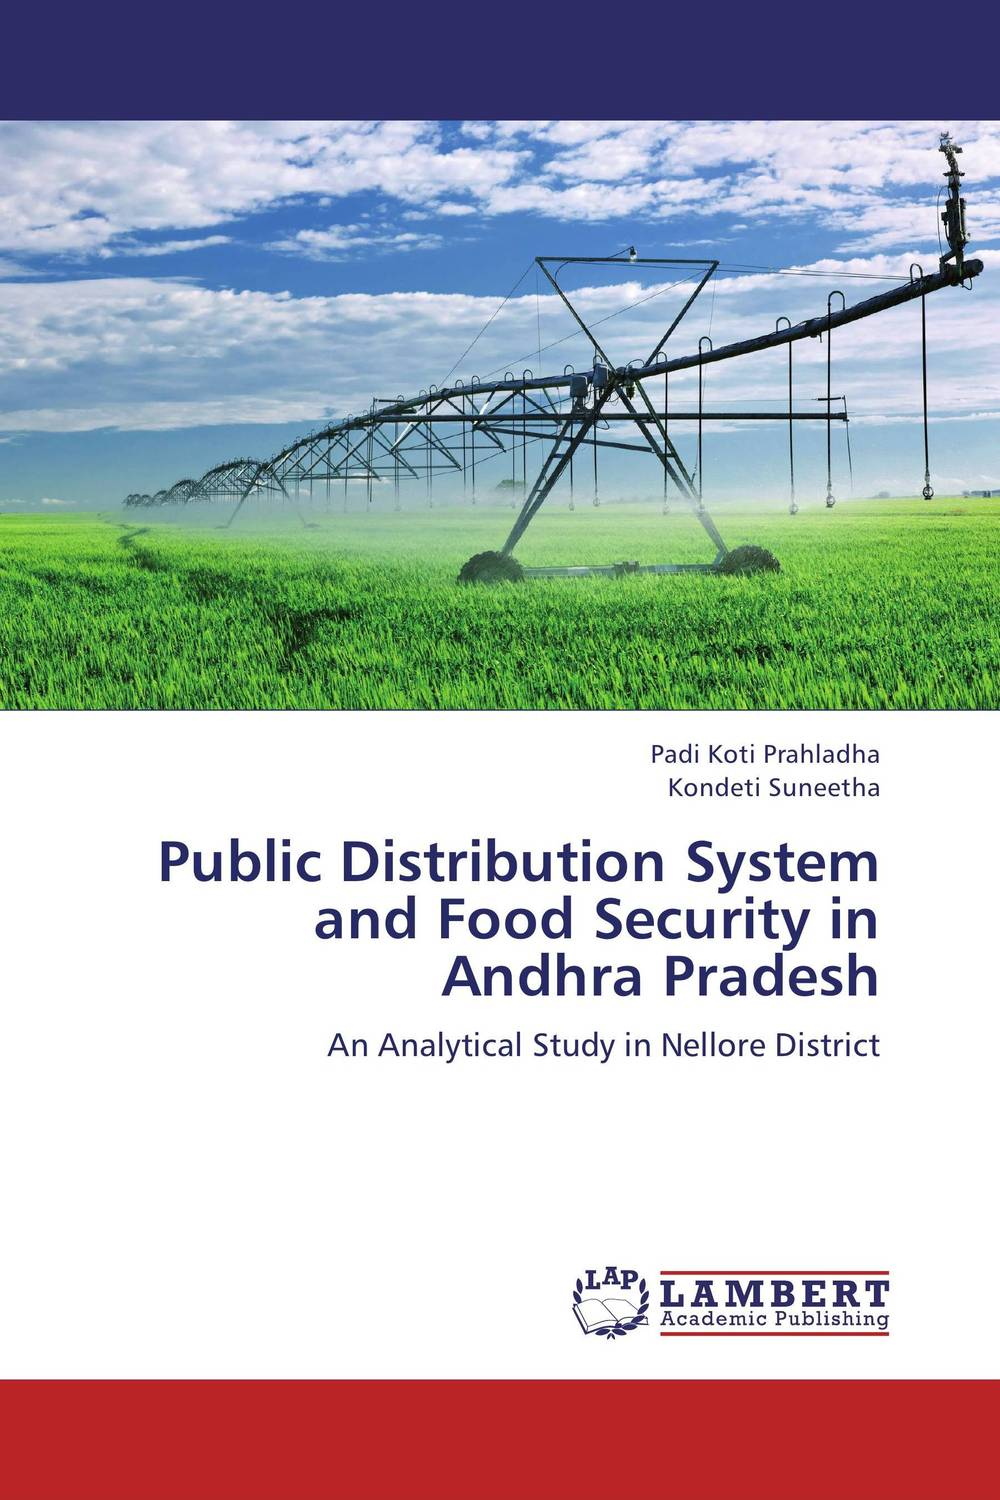 Public Distribution System and Food Security in Andhra Pradesh belousov a security features of banknotes and other documents methods of authentication manual денежные билеты бланки ценных бумаг и документов